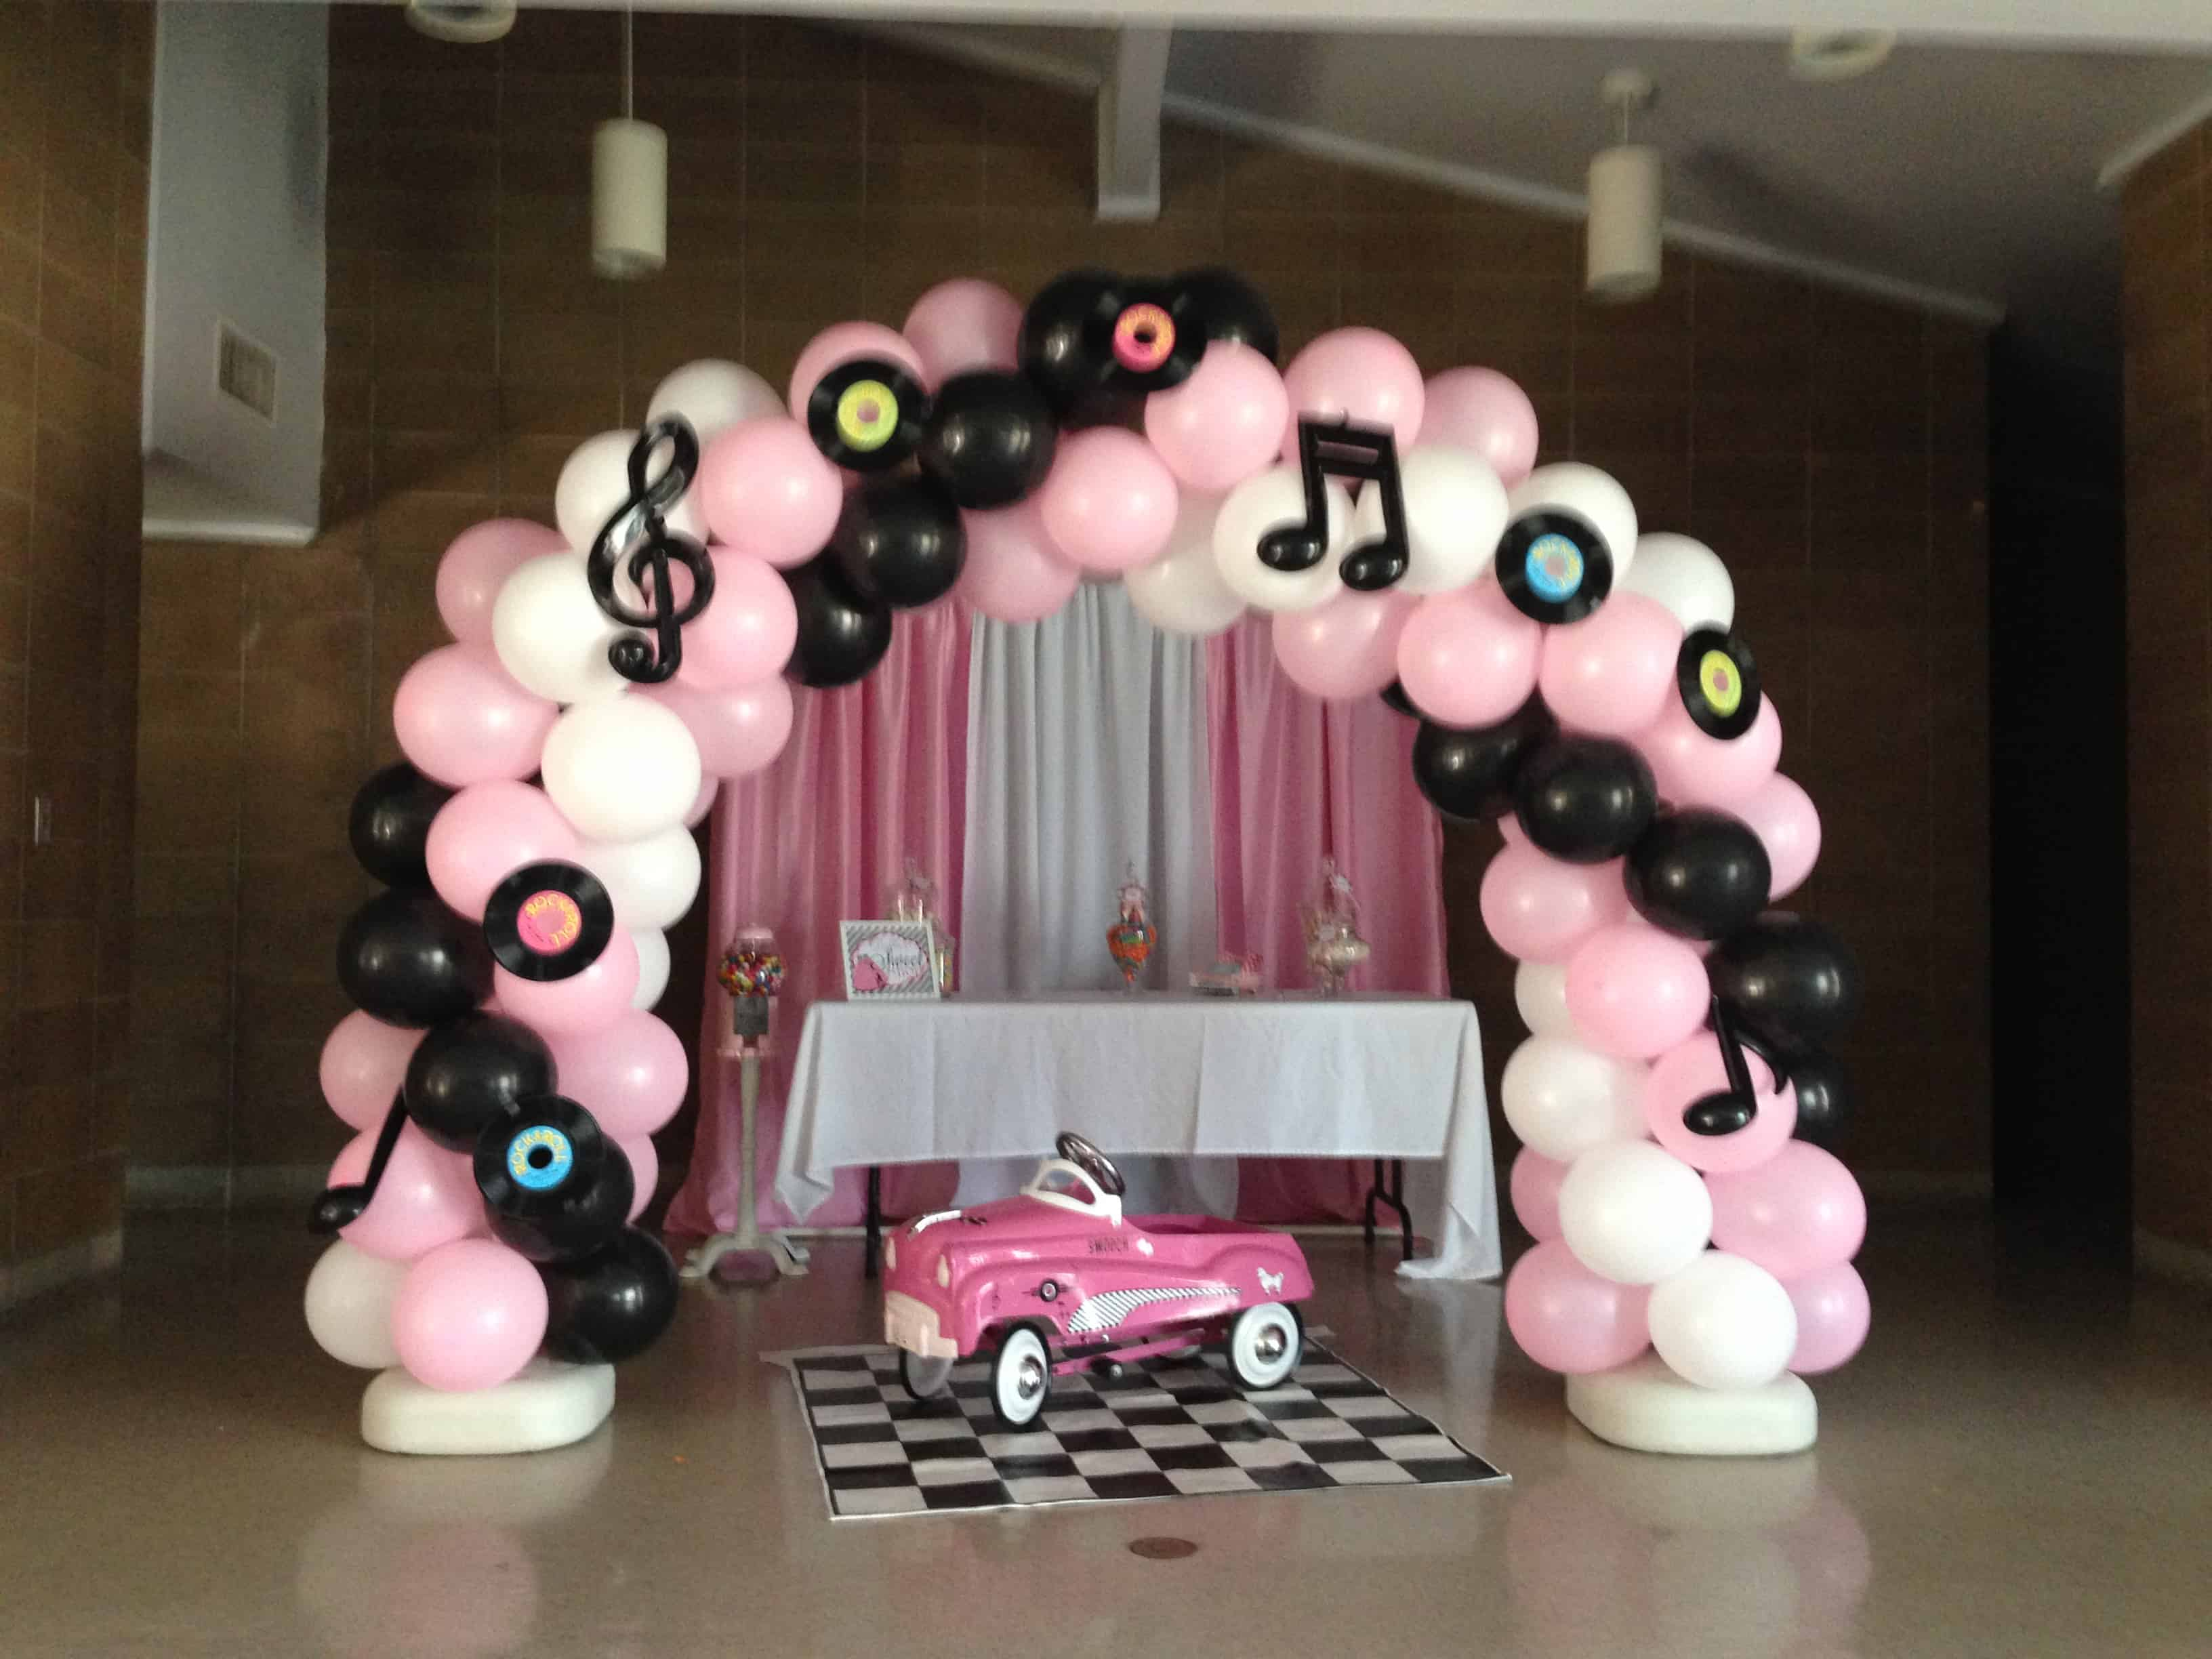 50s rock inspired balloon arch for parties